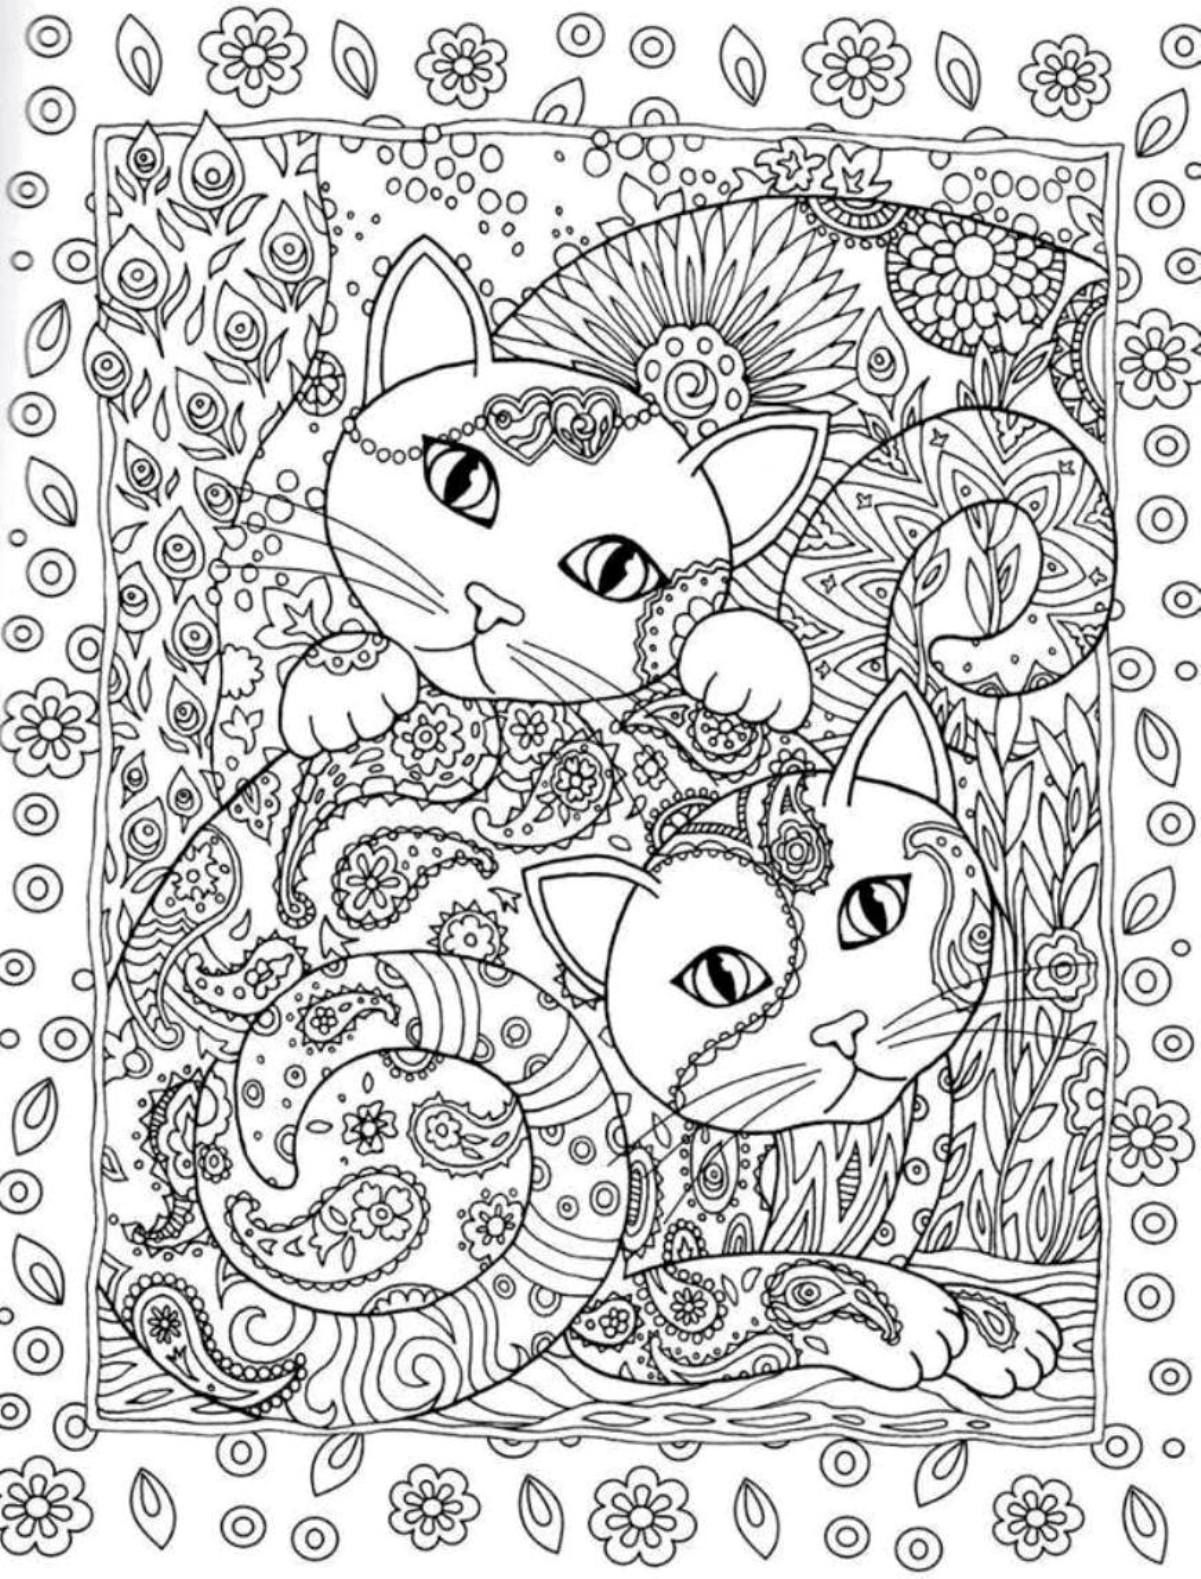 Creative Cats Coloring Book By Marjorie Sarnat Dover